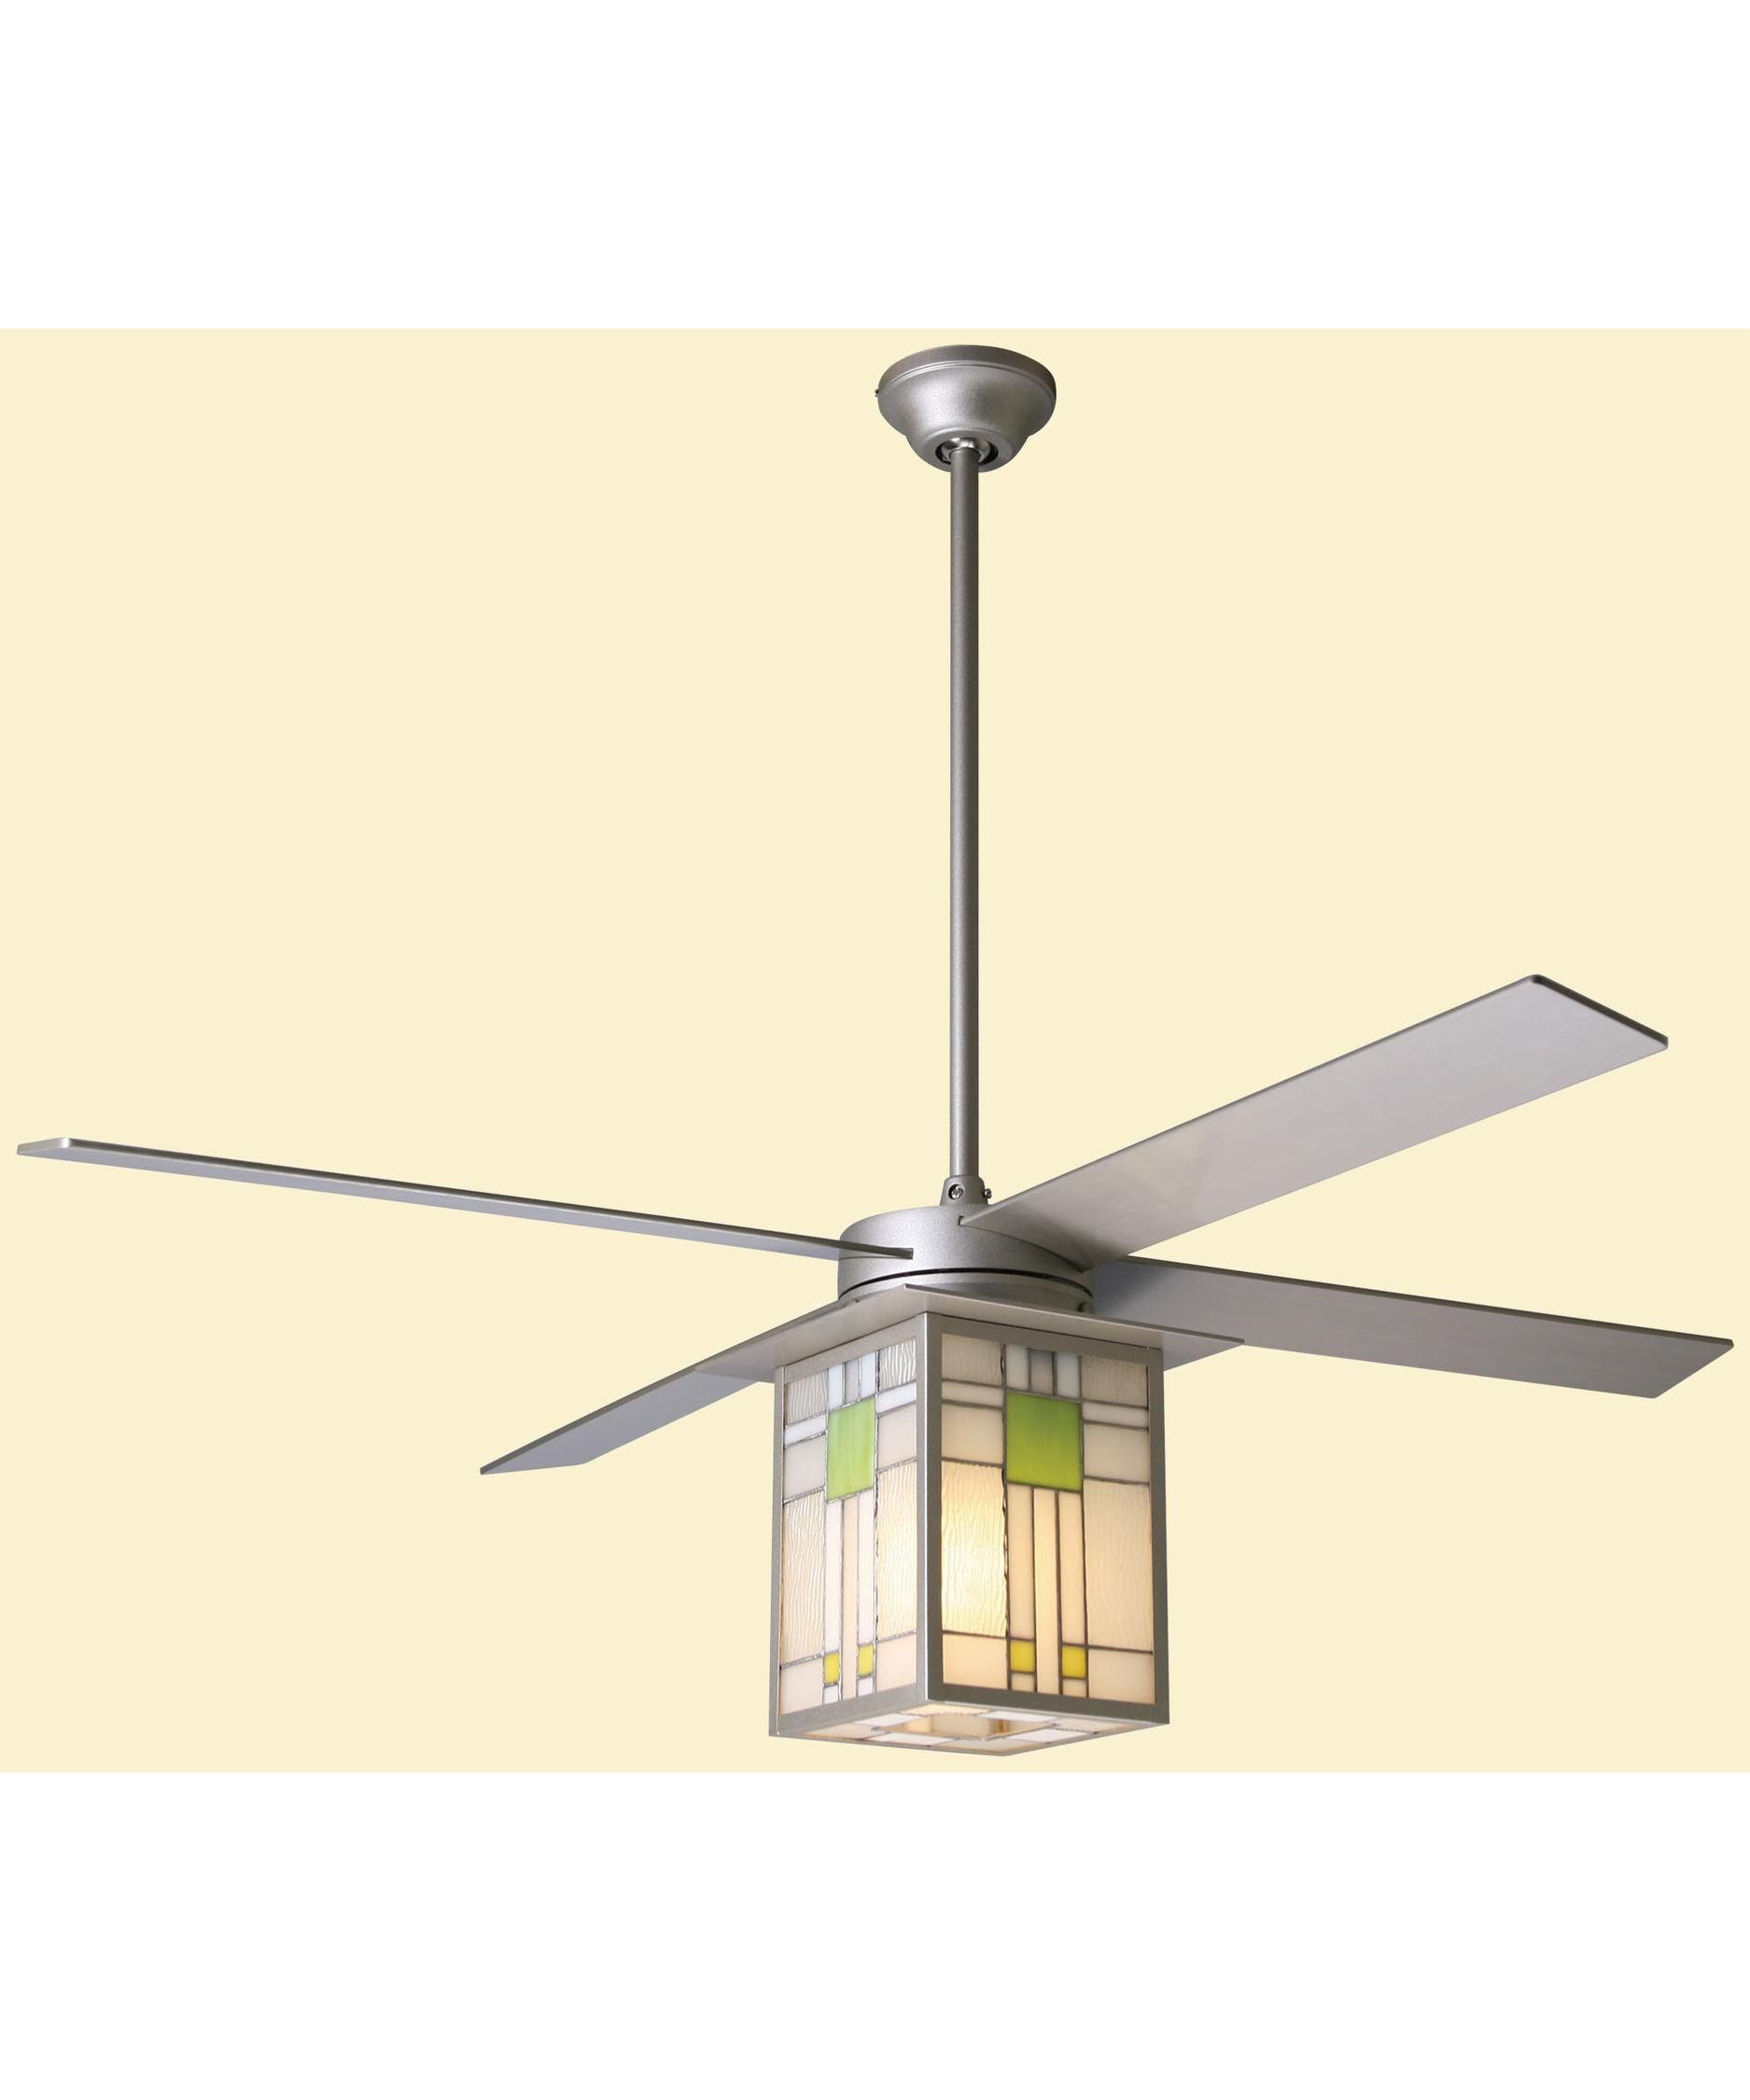 Period Arts Fan Company Pry 52 Prairie Energy Smart Inch Ceiling With Light Kit